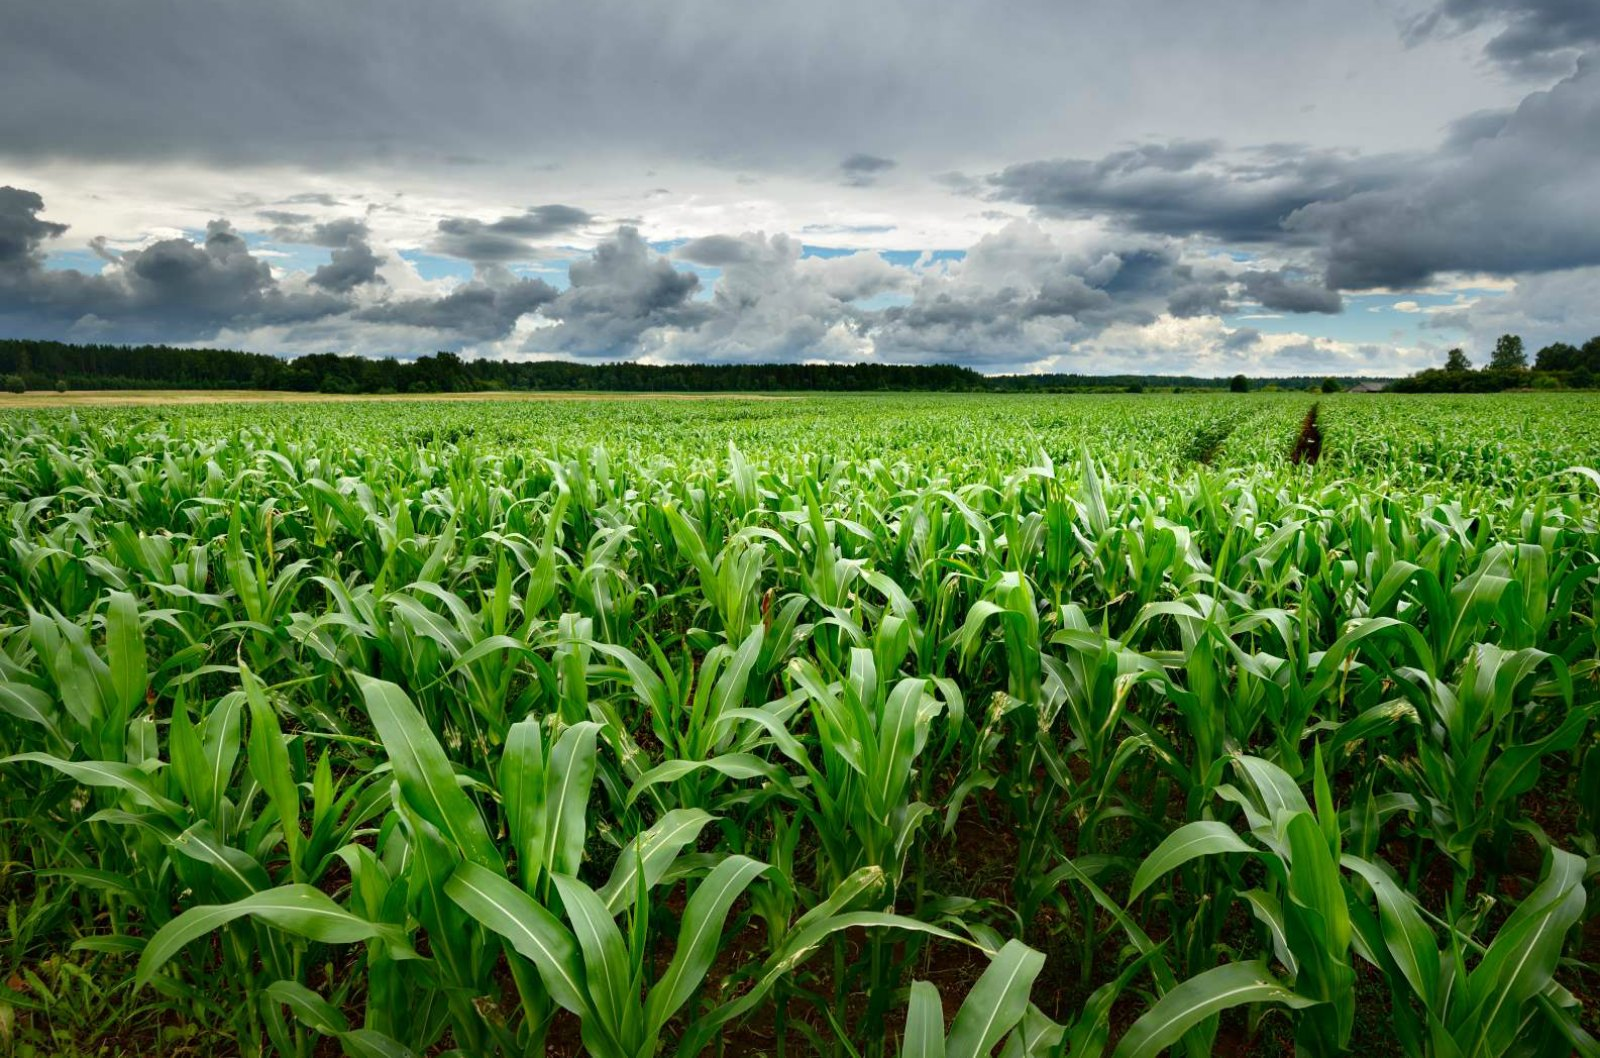 Green Power of Centia Moves Biofuel Energy Closer to Reality